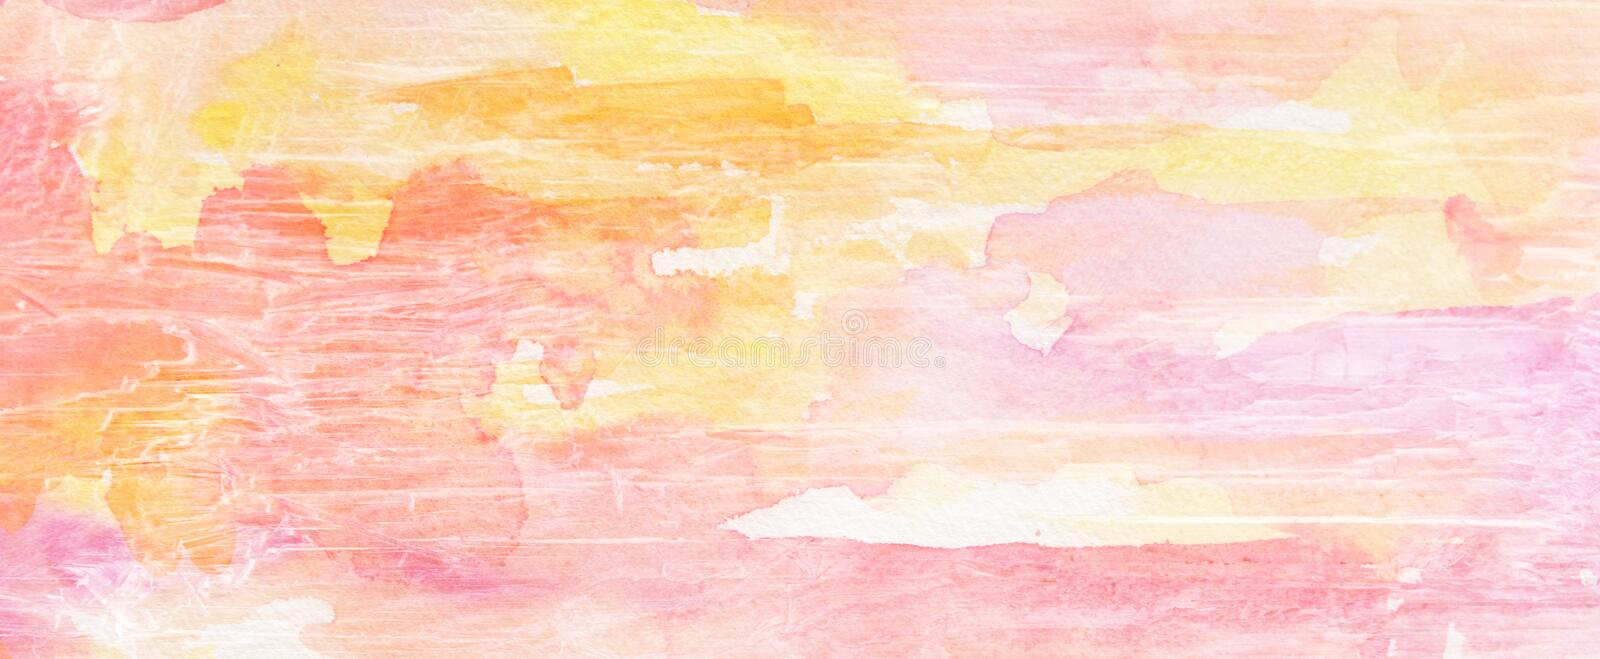 Painted background with old grunge cracked and grainy wood texture in pink yellow purple and orange vector illustration